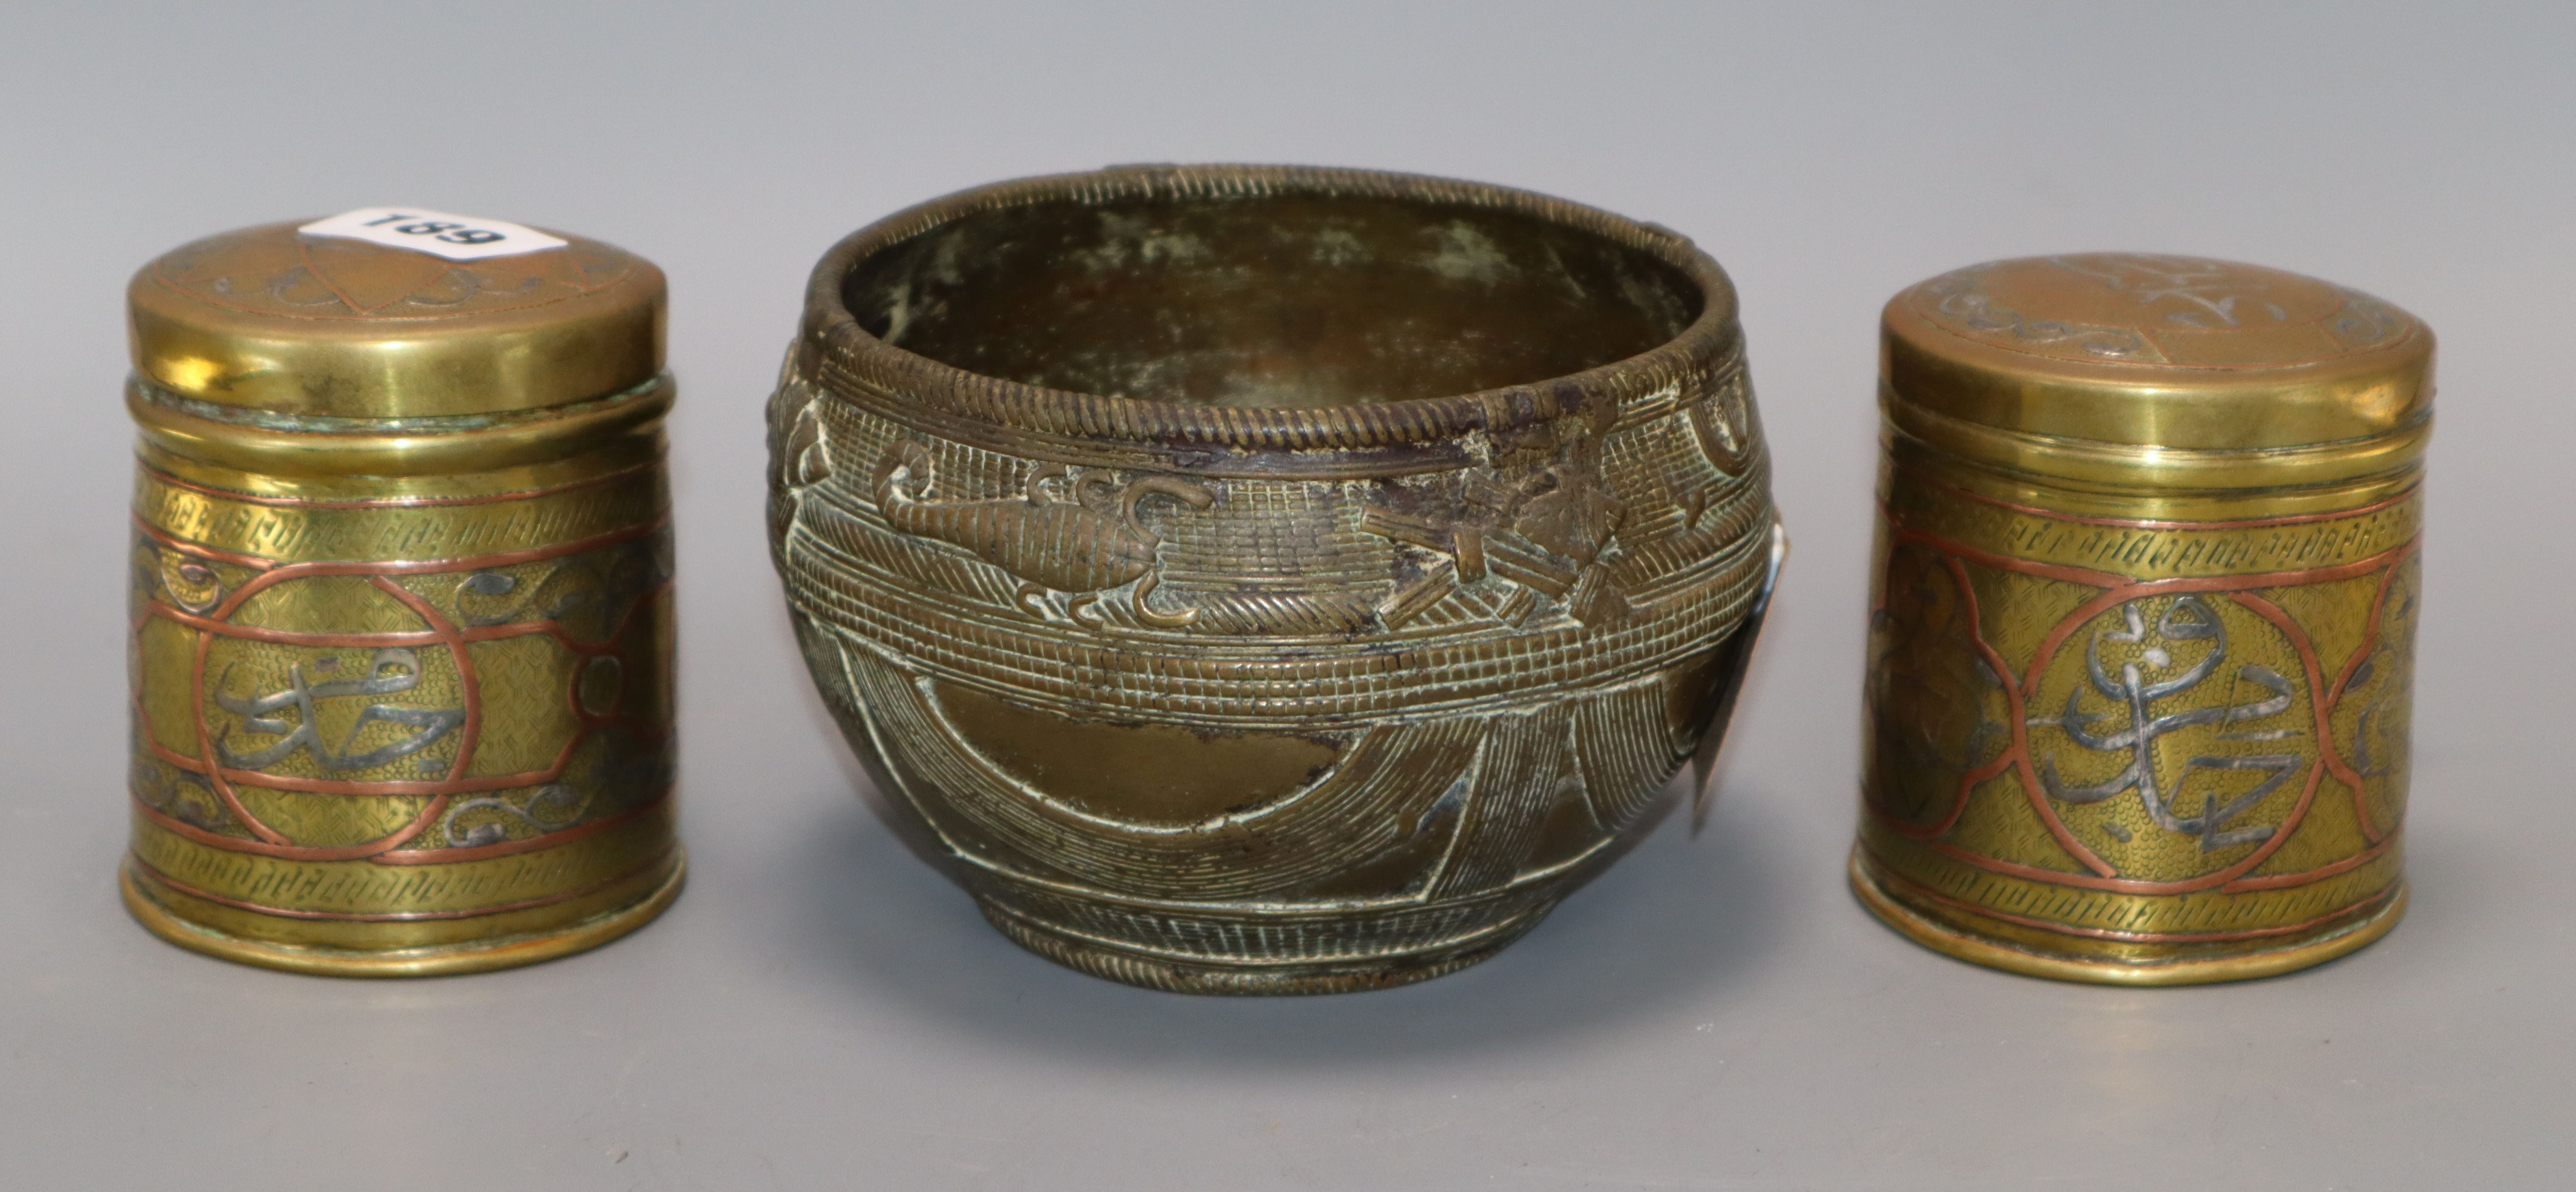 Lot 189 - Two Cairo ware canisters and a Benin style bowl